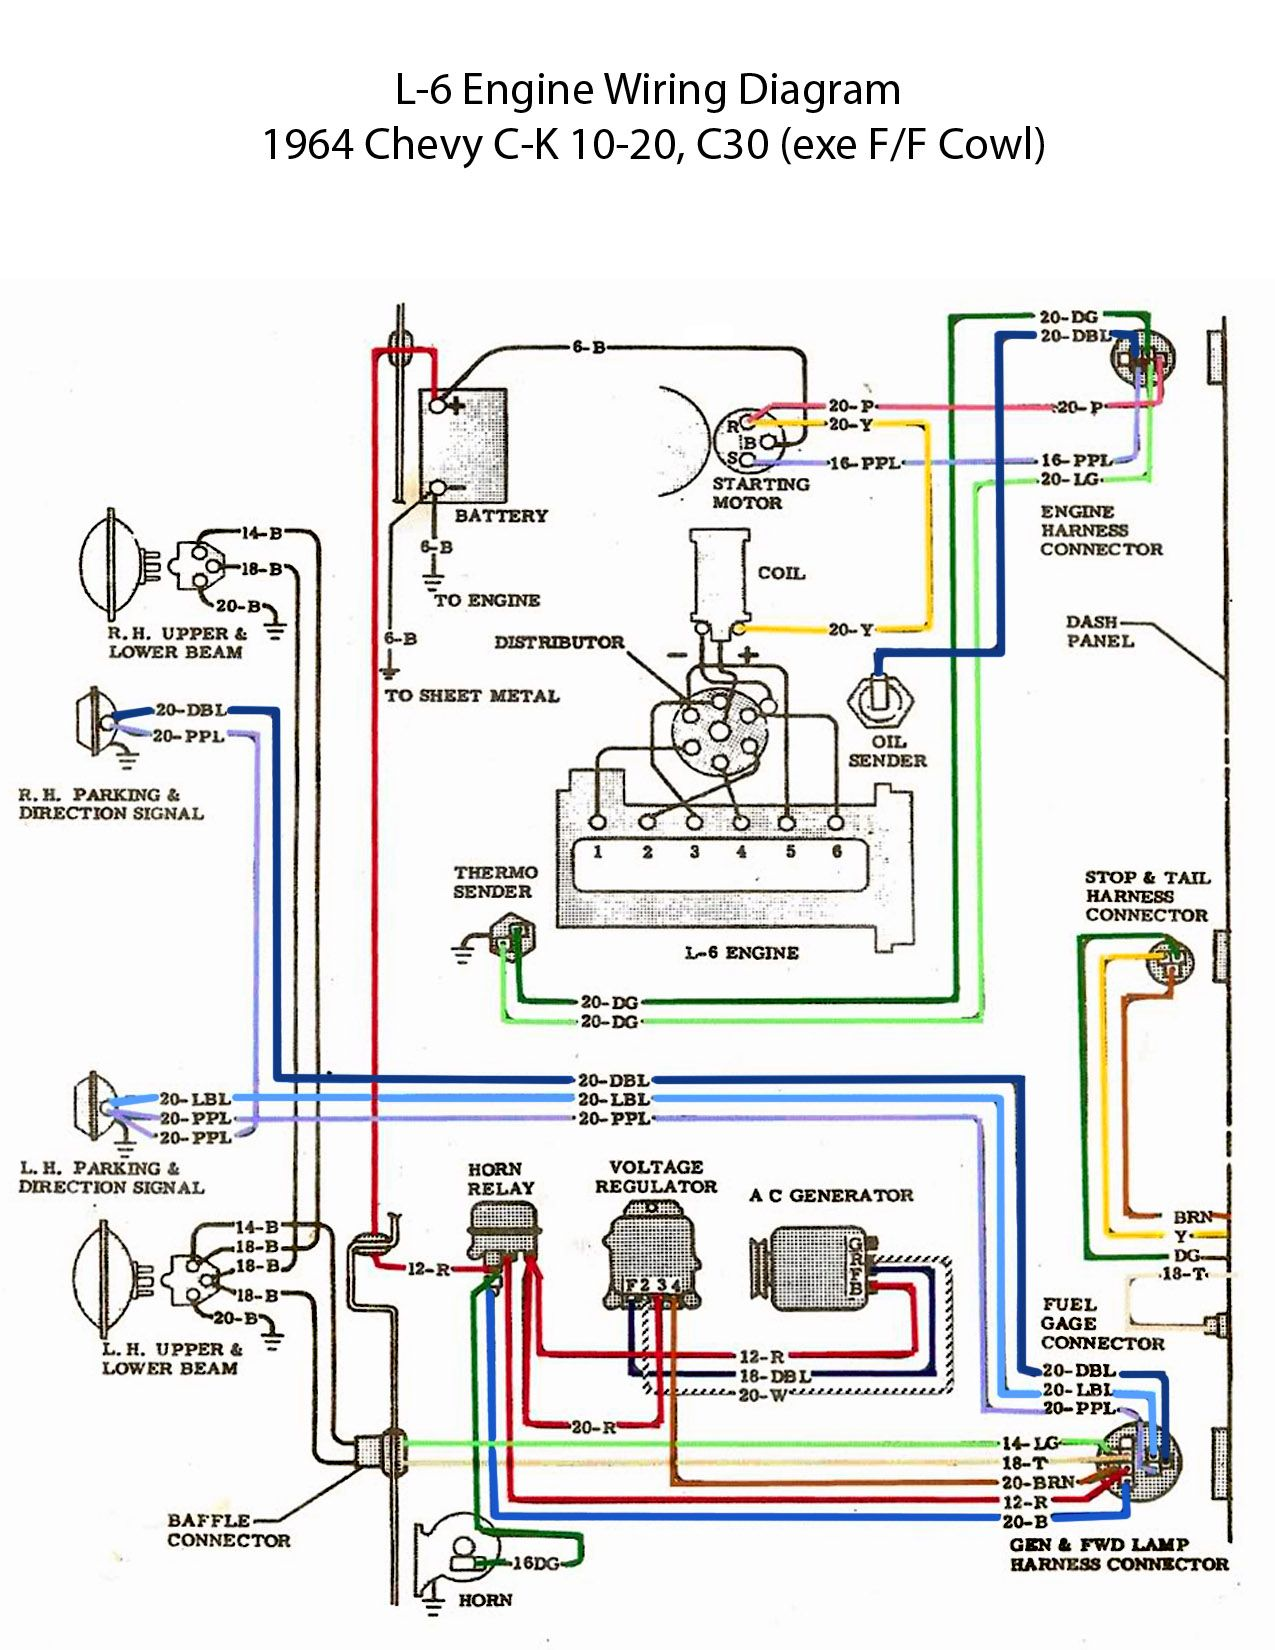 1970 f100 electric fan relay wiring diagram [ 1275 x 1650 Pixel ]